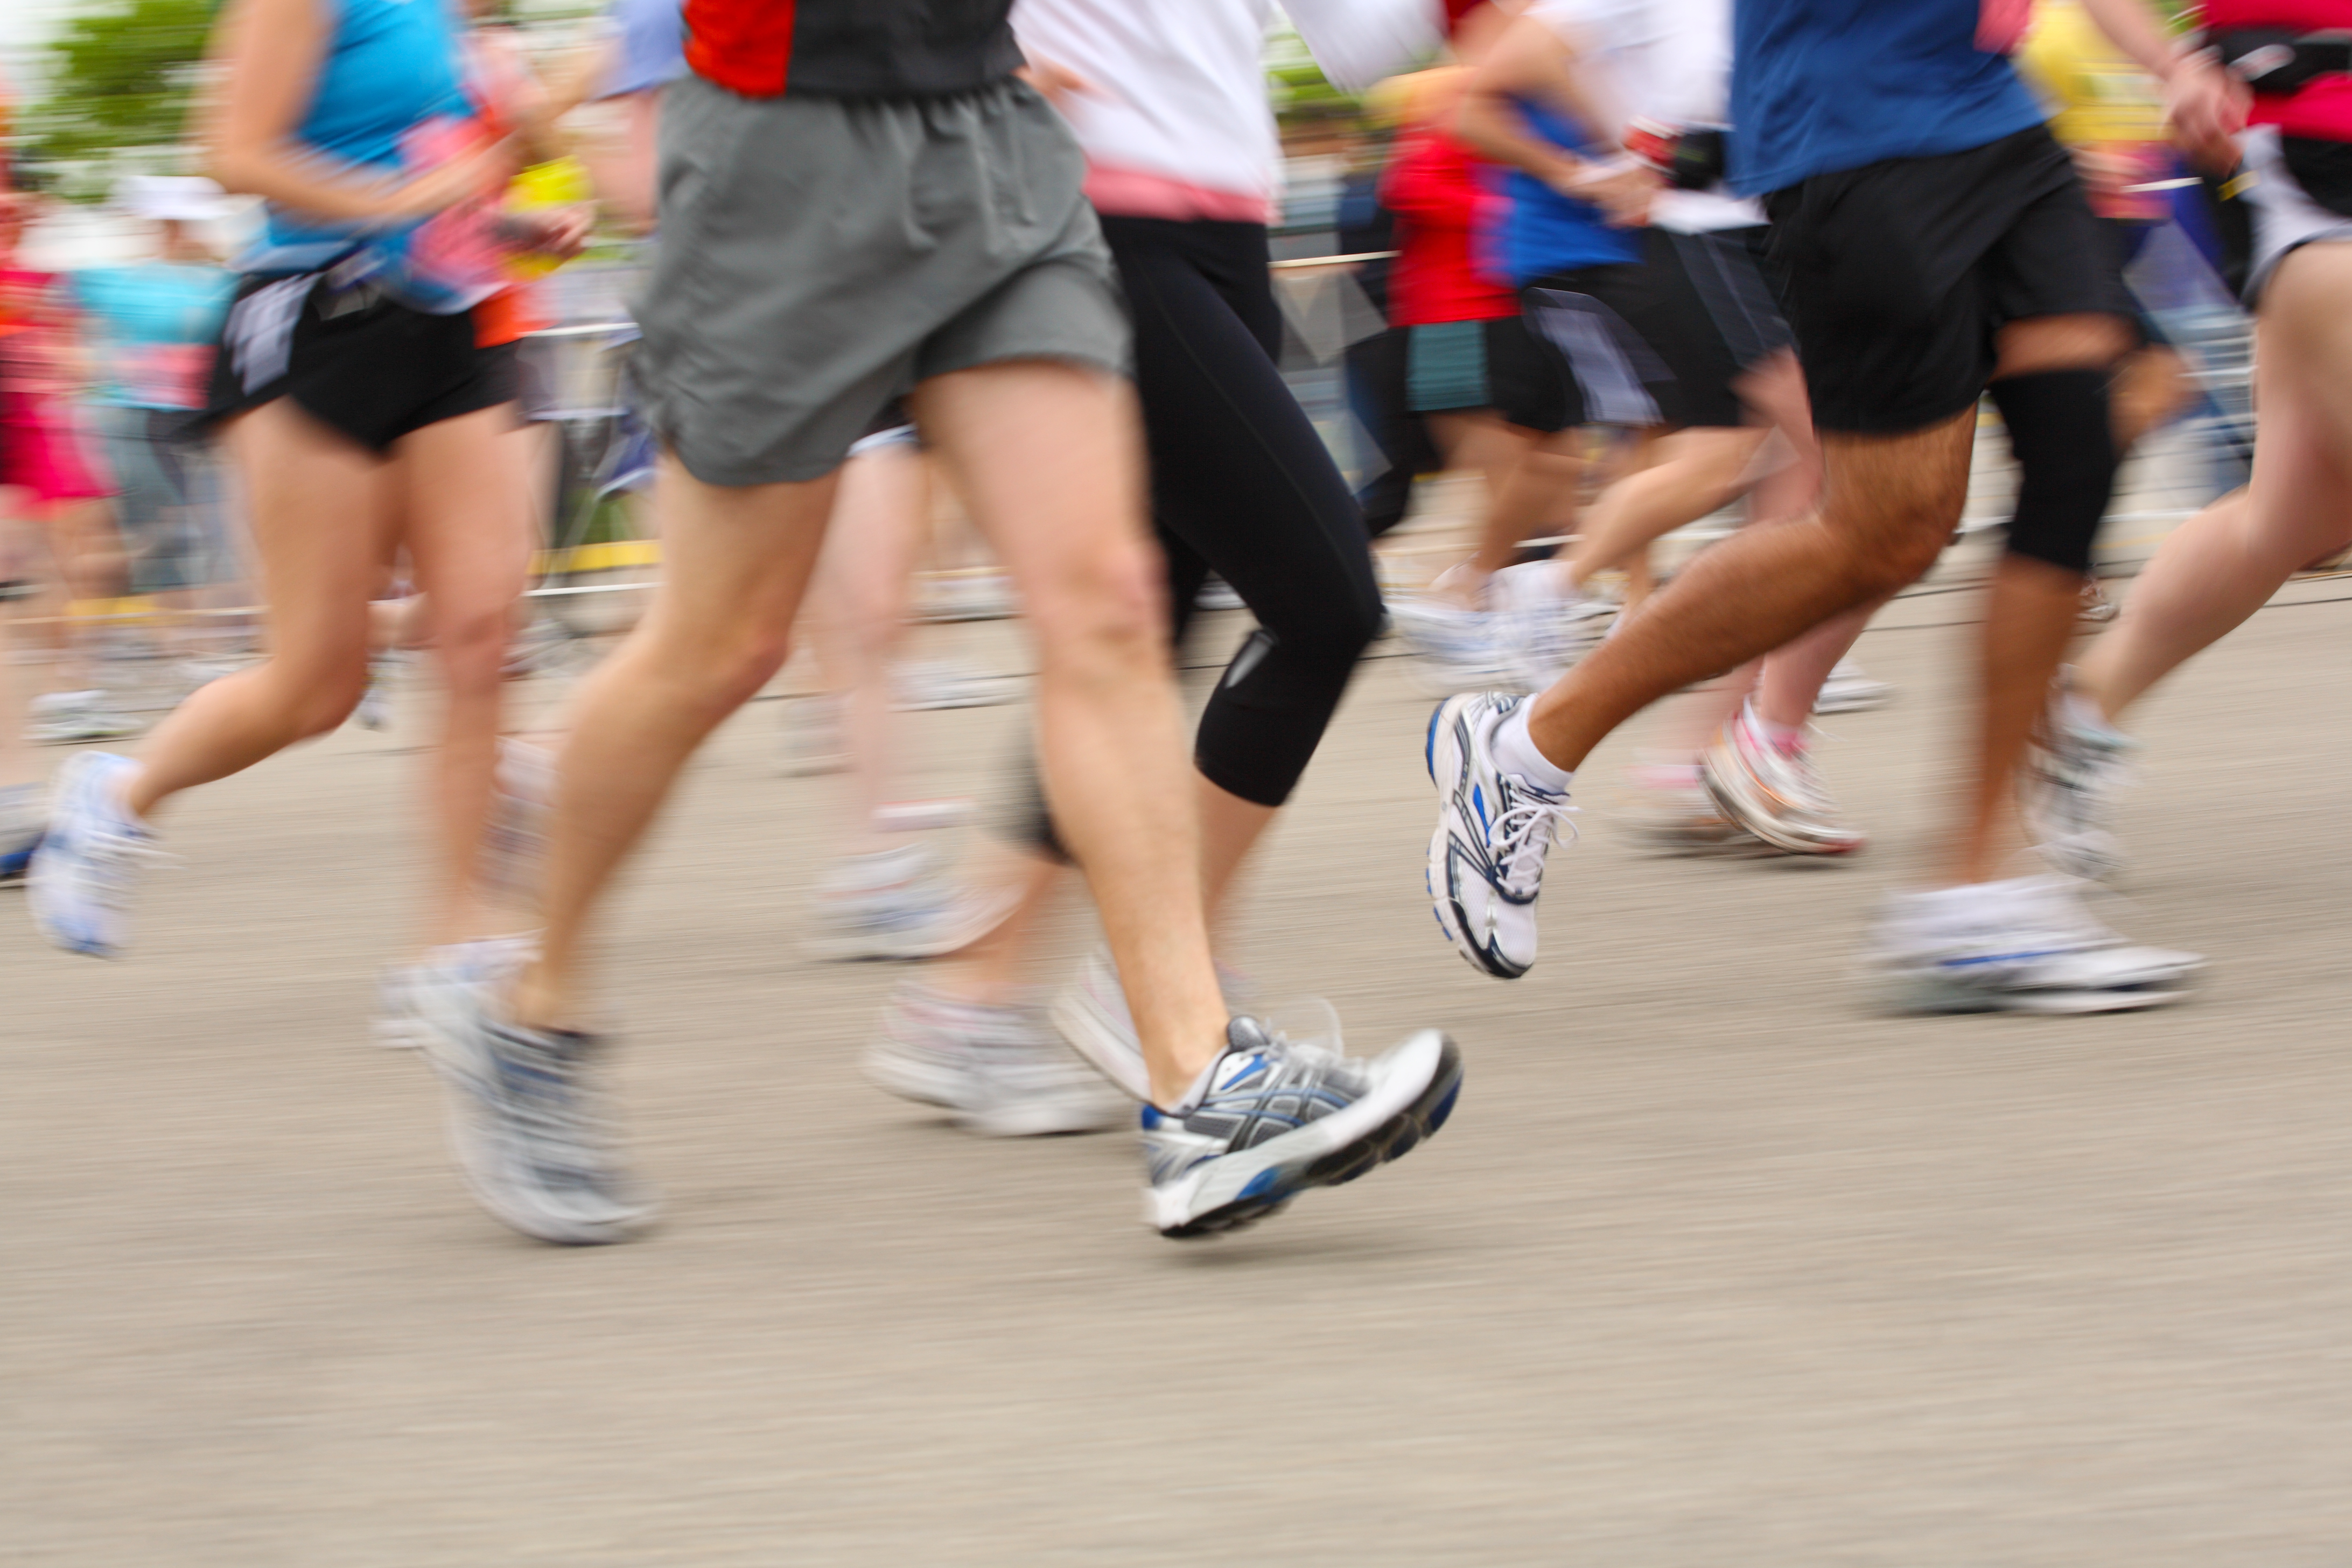 crowd of runners running in marathon or race